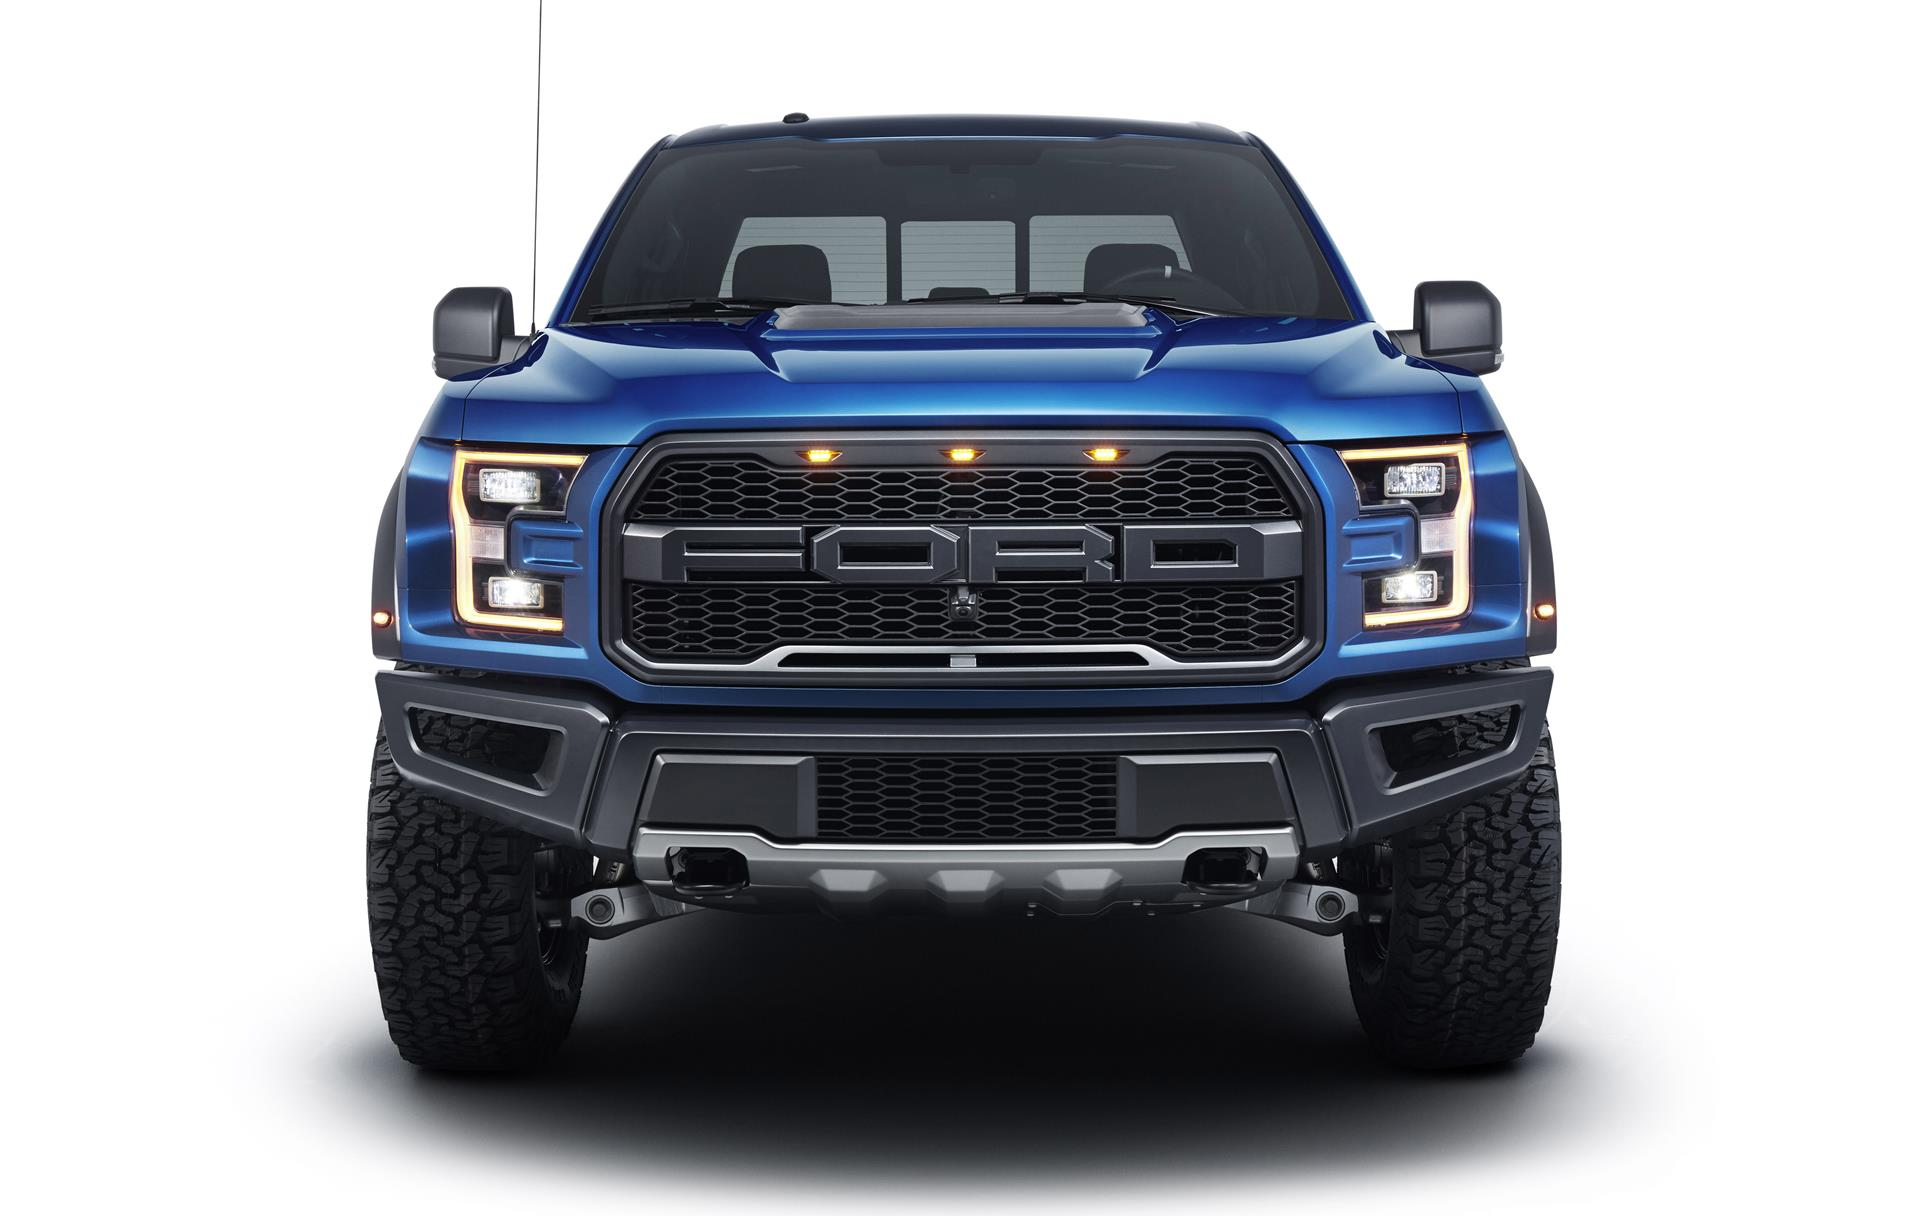 2015 ford f 150 raptor technical specifications and data engine dimensions and mechanical details conceptcarzcom